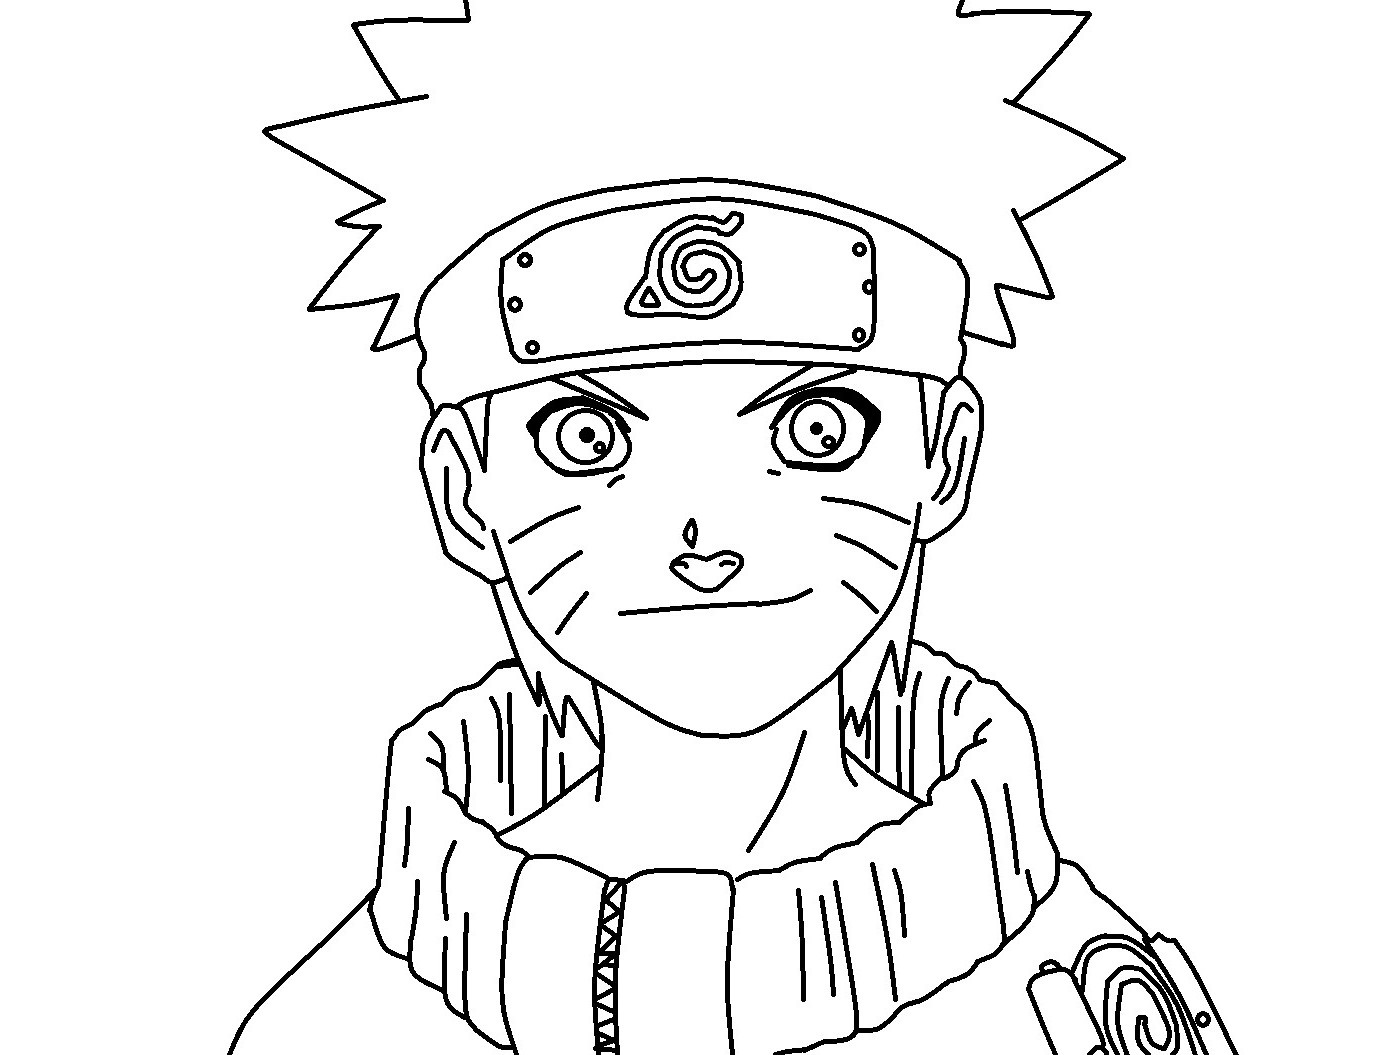 naruto coloring page with shadow